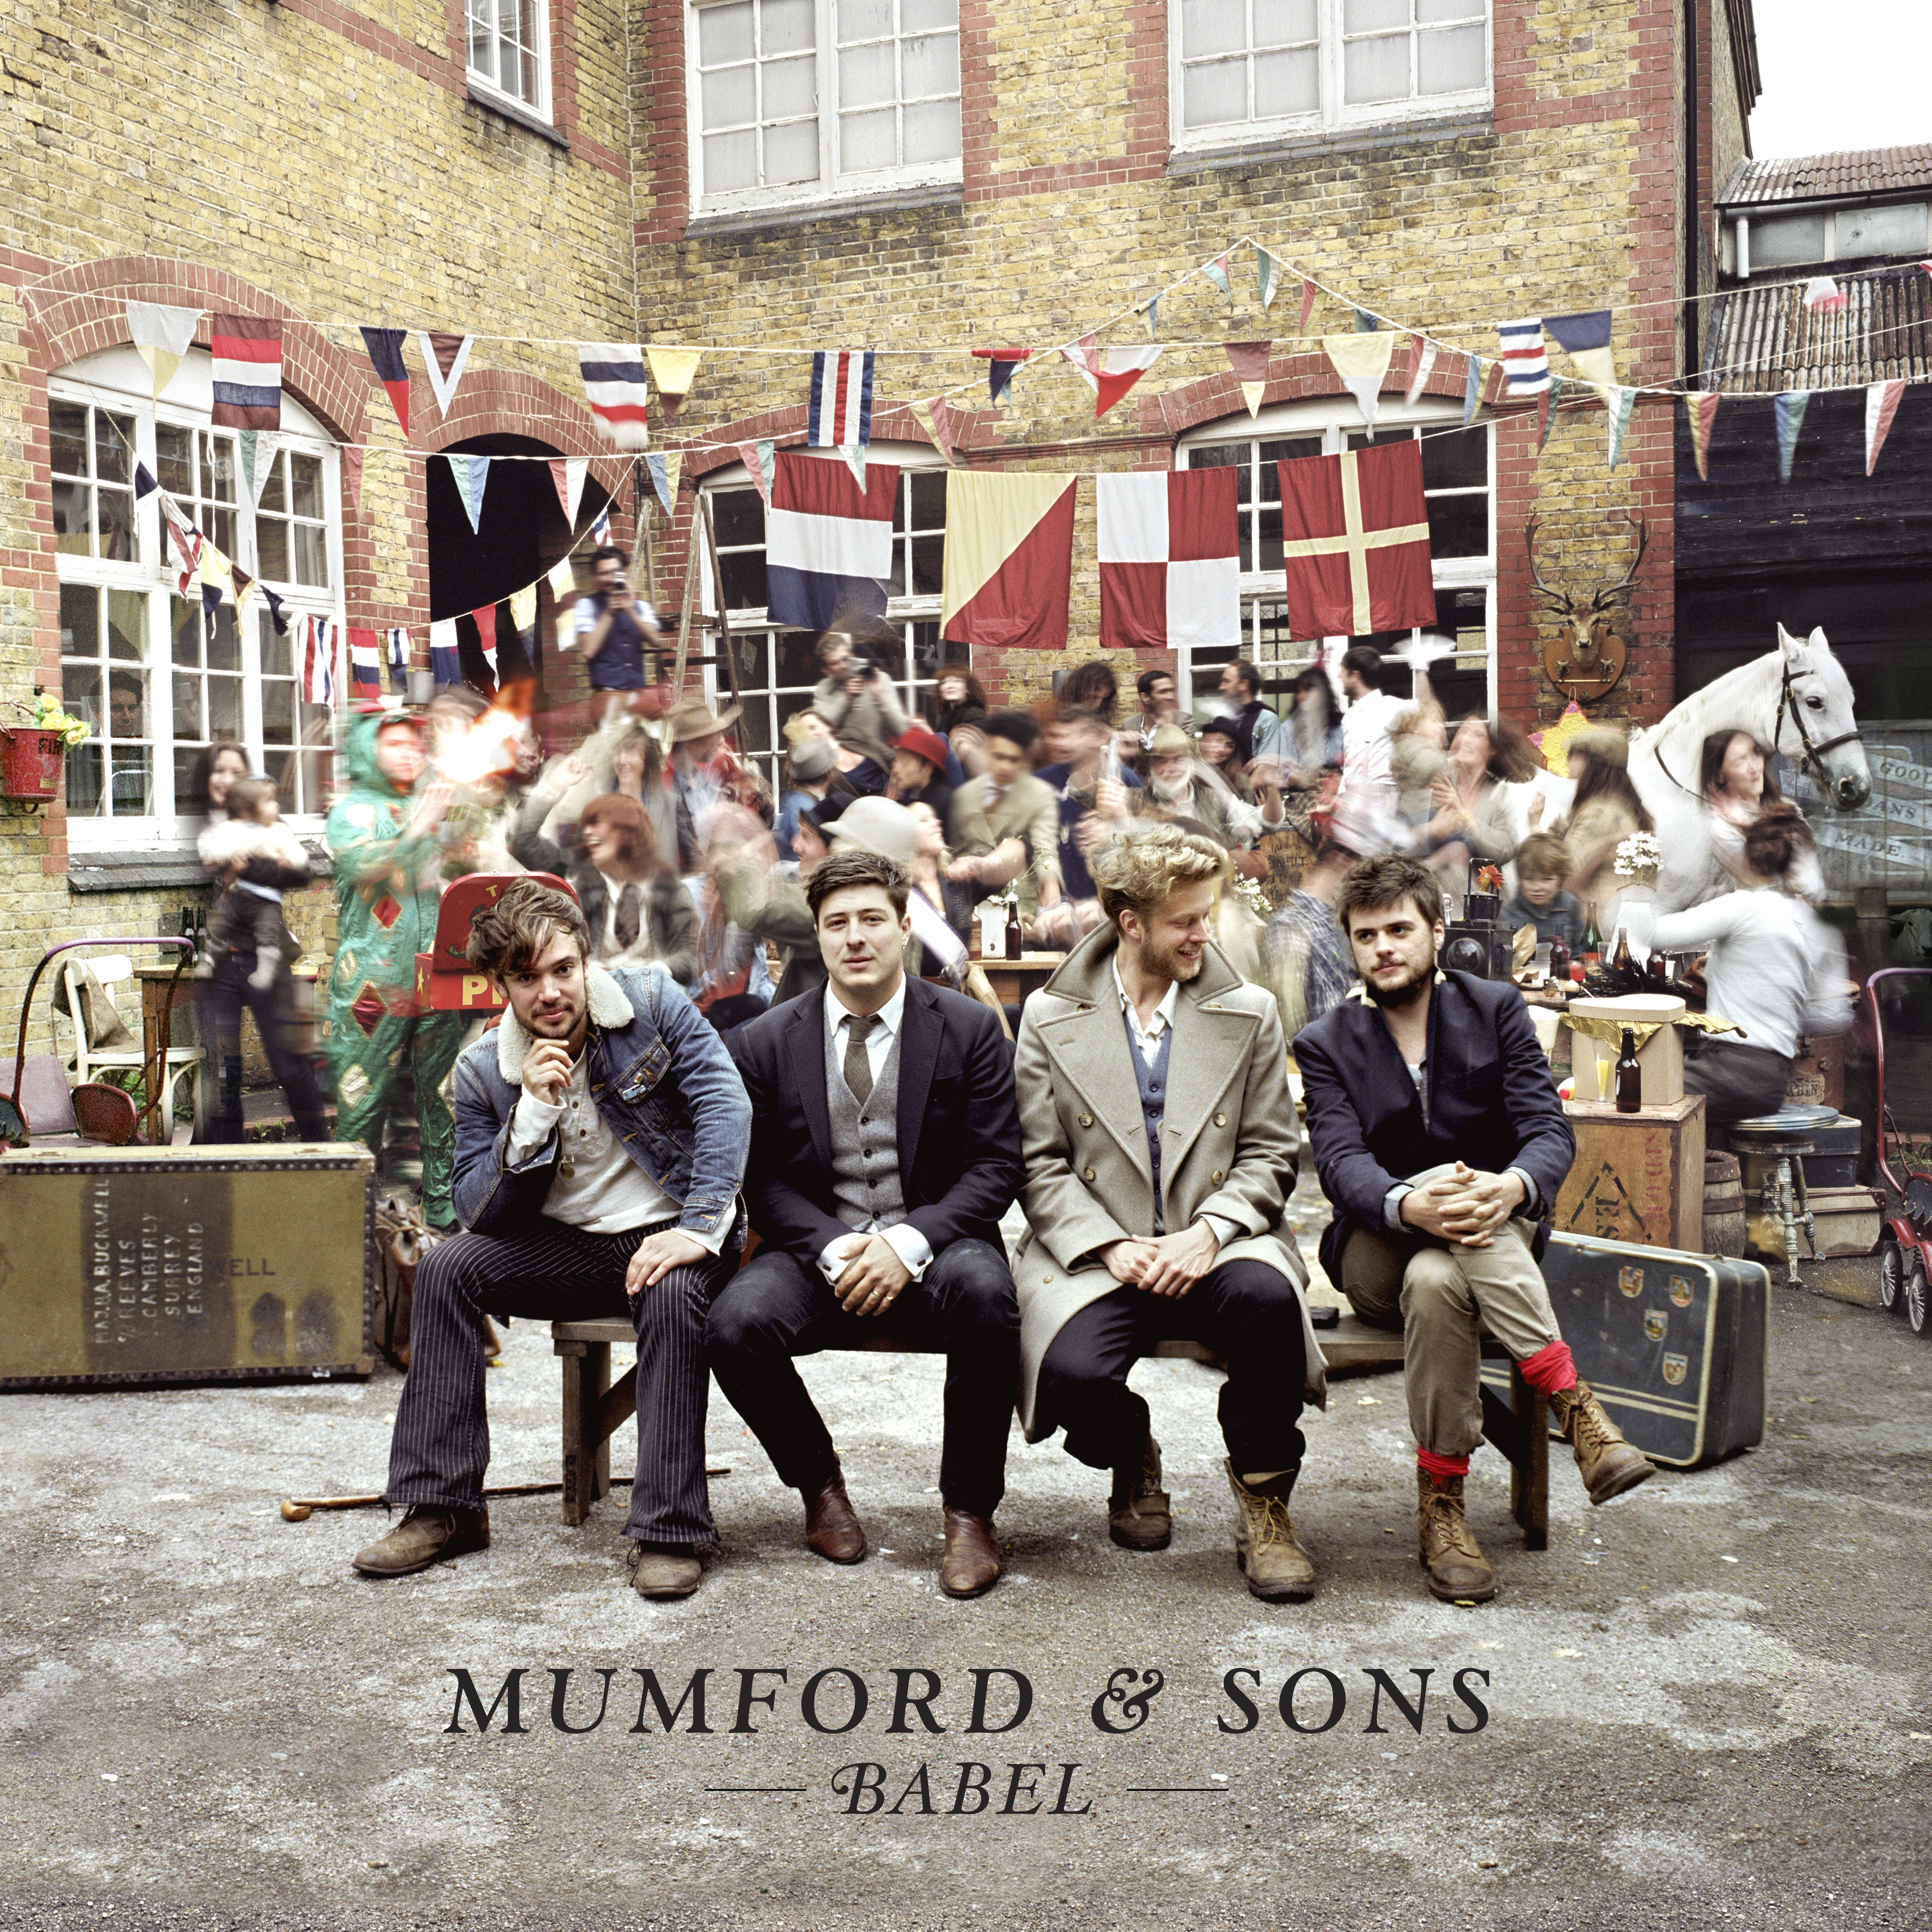 Mumford and Sons - Babel album cover